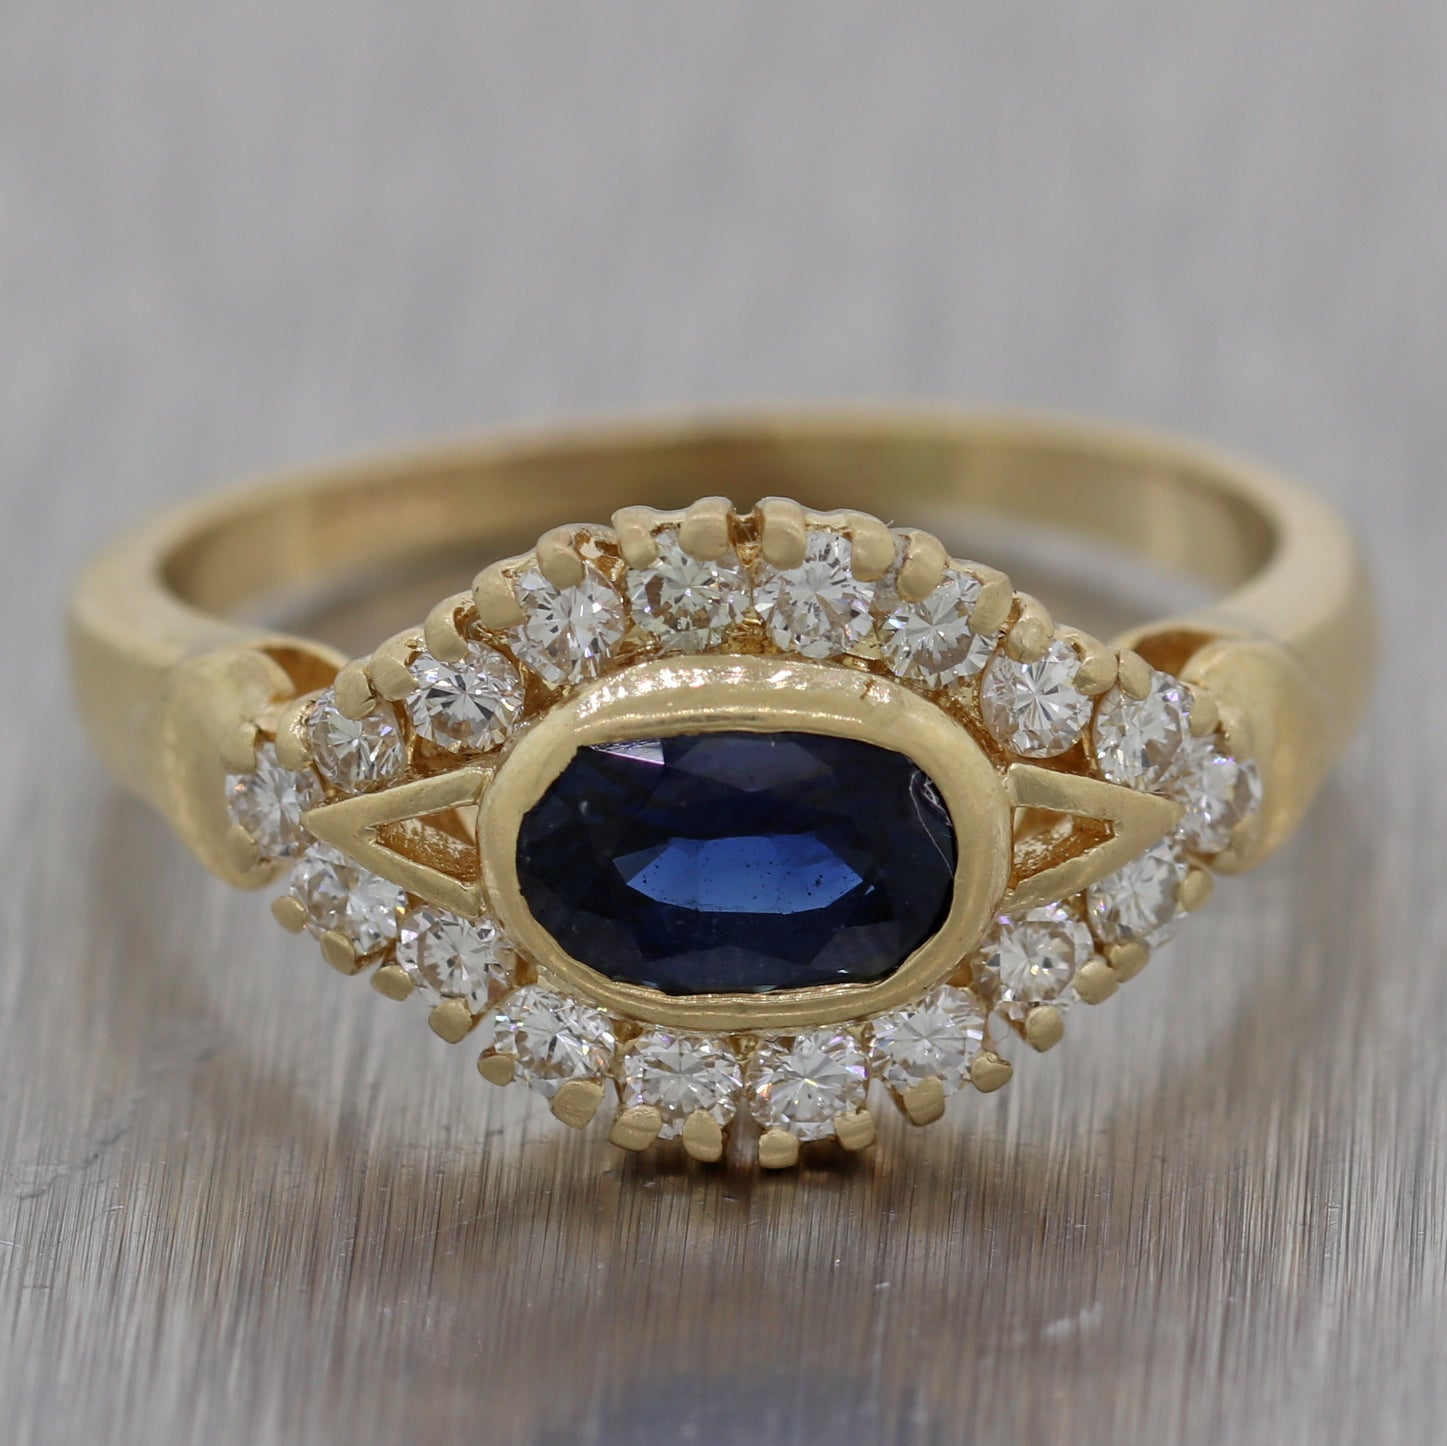 Vintage Estate 14k Yellow Gold 1ctw Sapphire & Diamond Ring